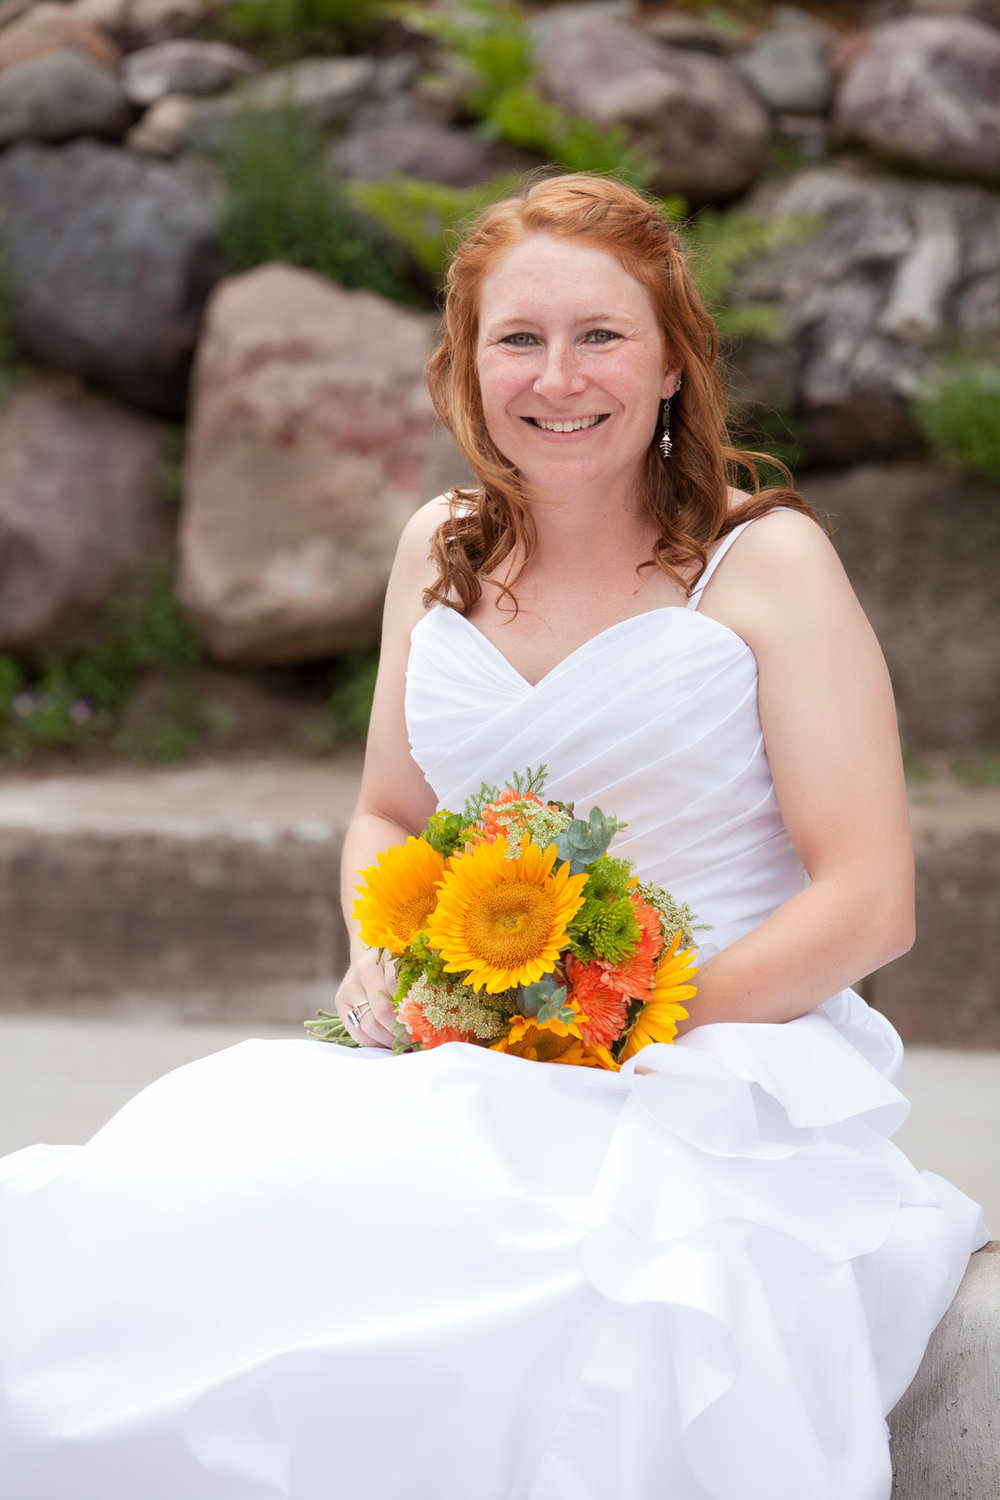 upper-peninsula-photographer-wedding-engagement--marquette-michigan-jackie-solomon-photography-085.jpg